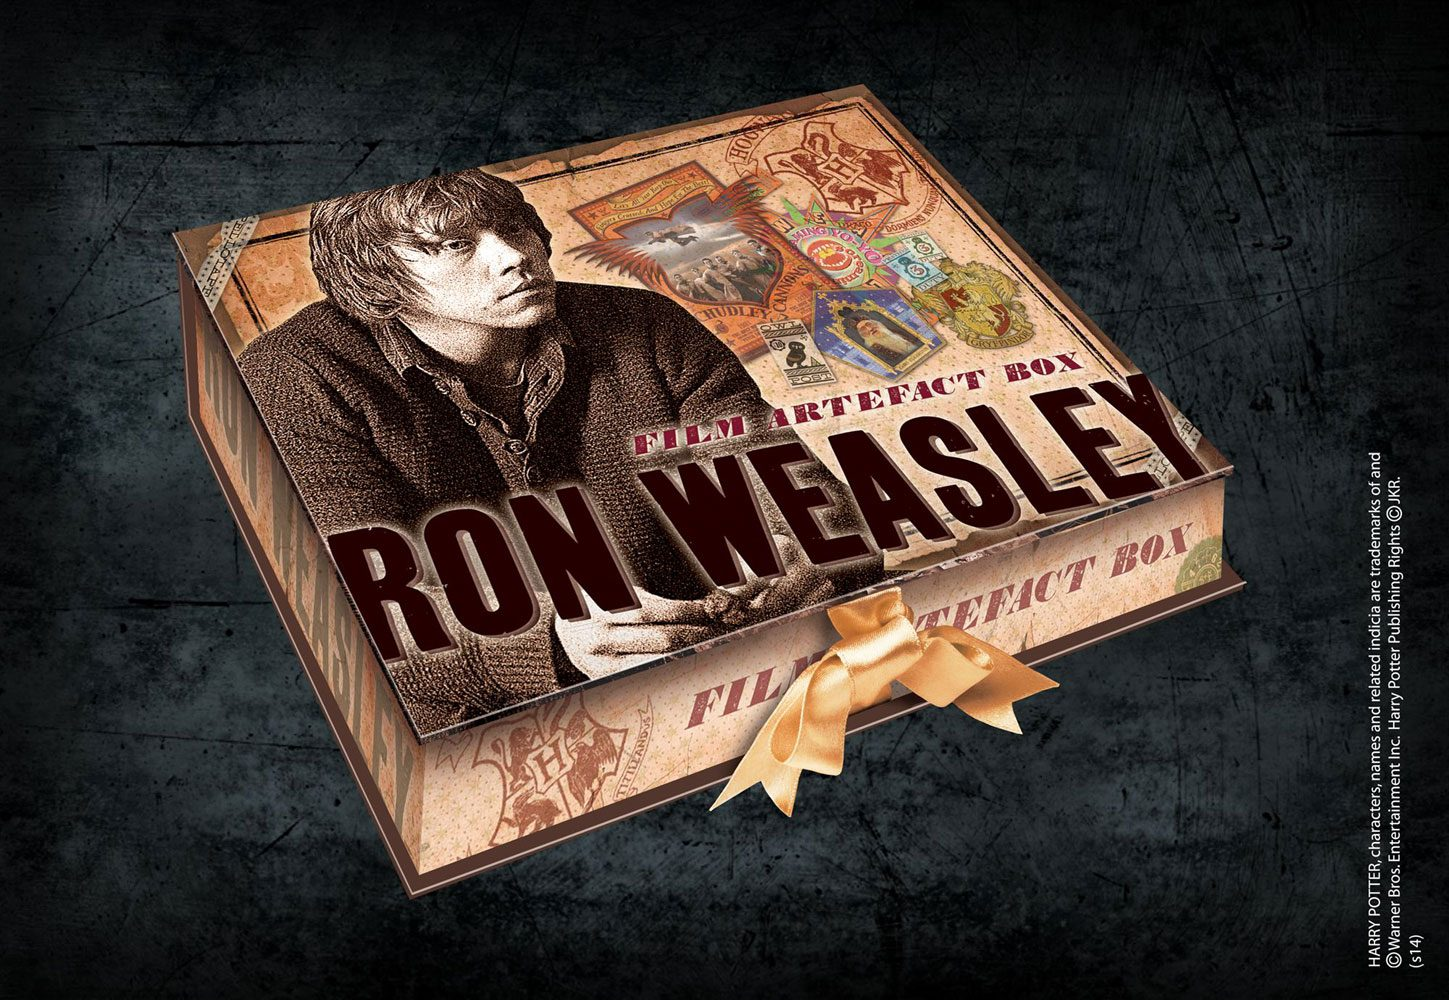 Harry Potter Artefact Box Ron Weasley